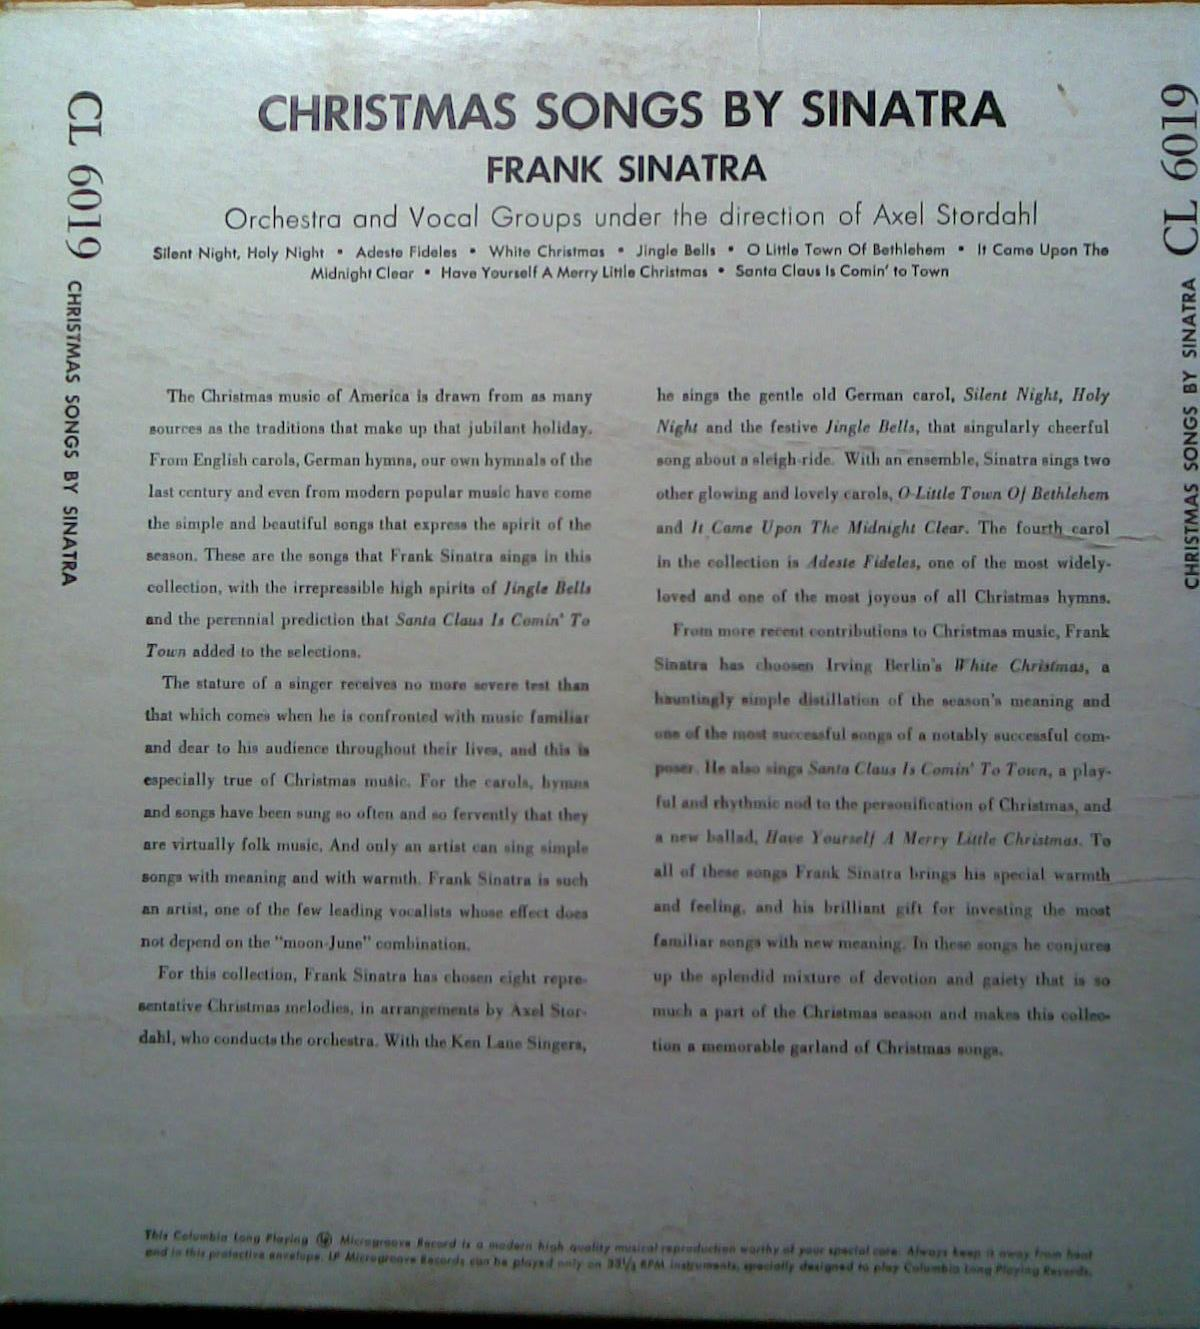 christmas songs by sinatra - Christmas Songs By Sinatra